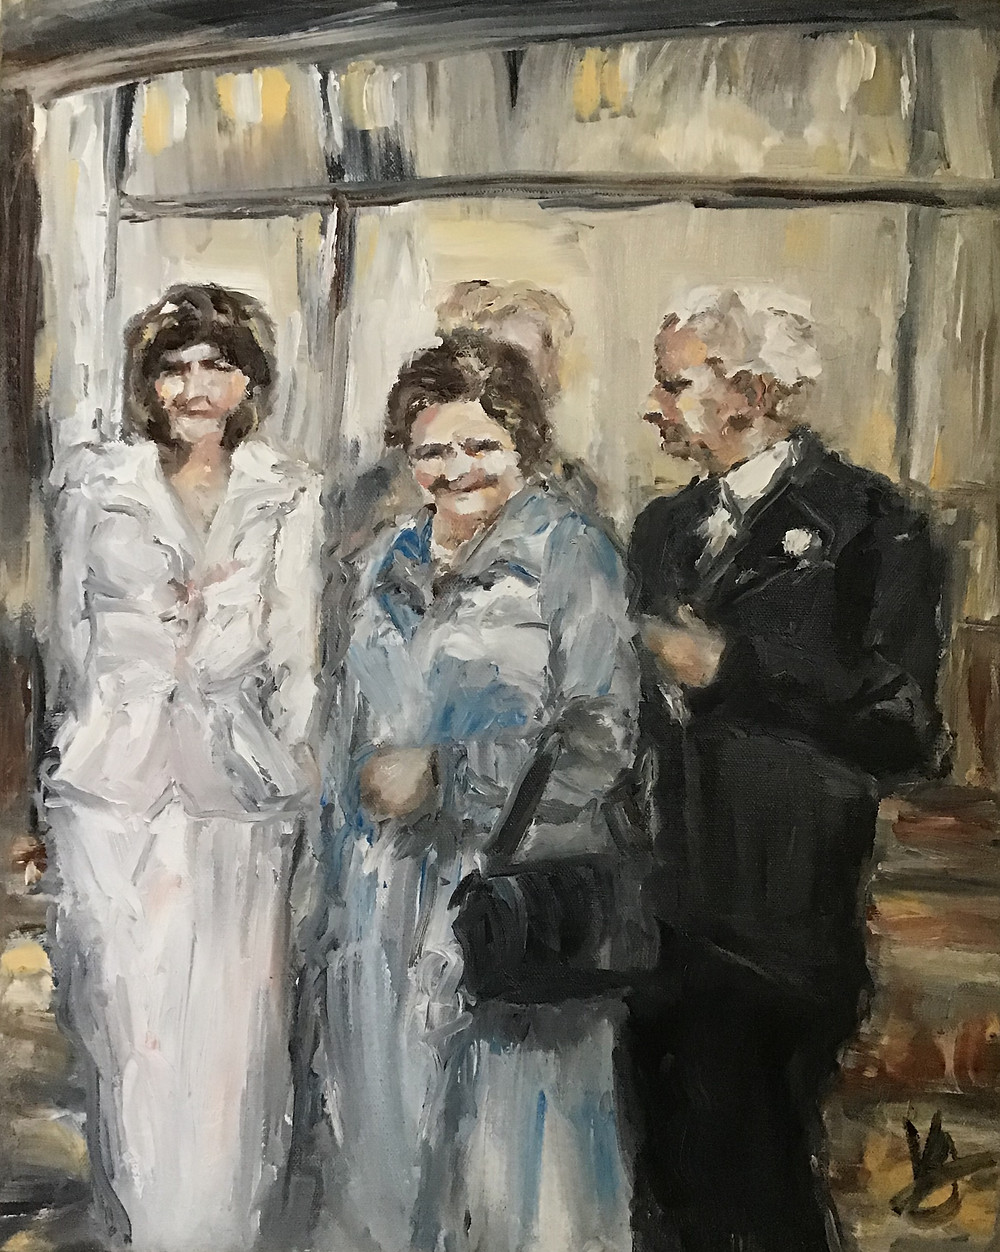 Reception. (oil on canvas, 20x16 inches/50x40 cm) - expressionistic oil painting on canvas. Various expressions/reactions to a reception - perhaps a wedding... 1970s or early 1980's depiction. Things are never as rosy as they appear, in particular upon closer inspection of the woman's expression on the far left.